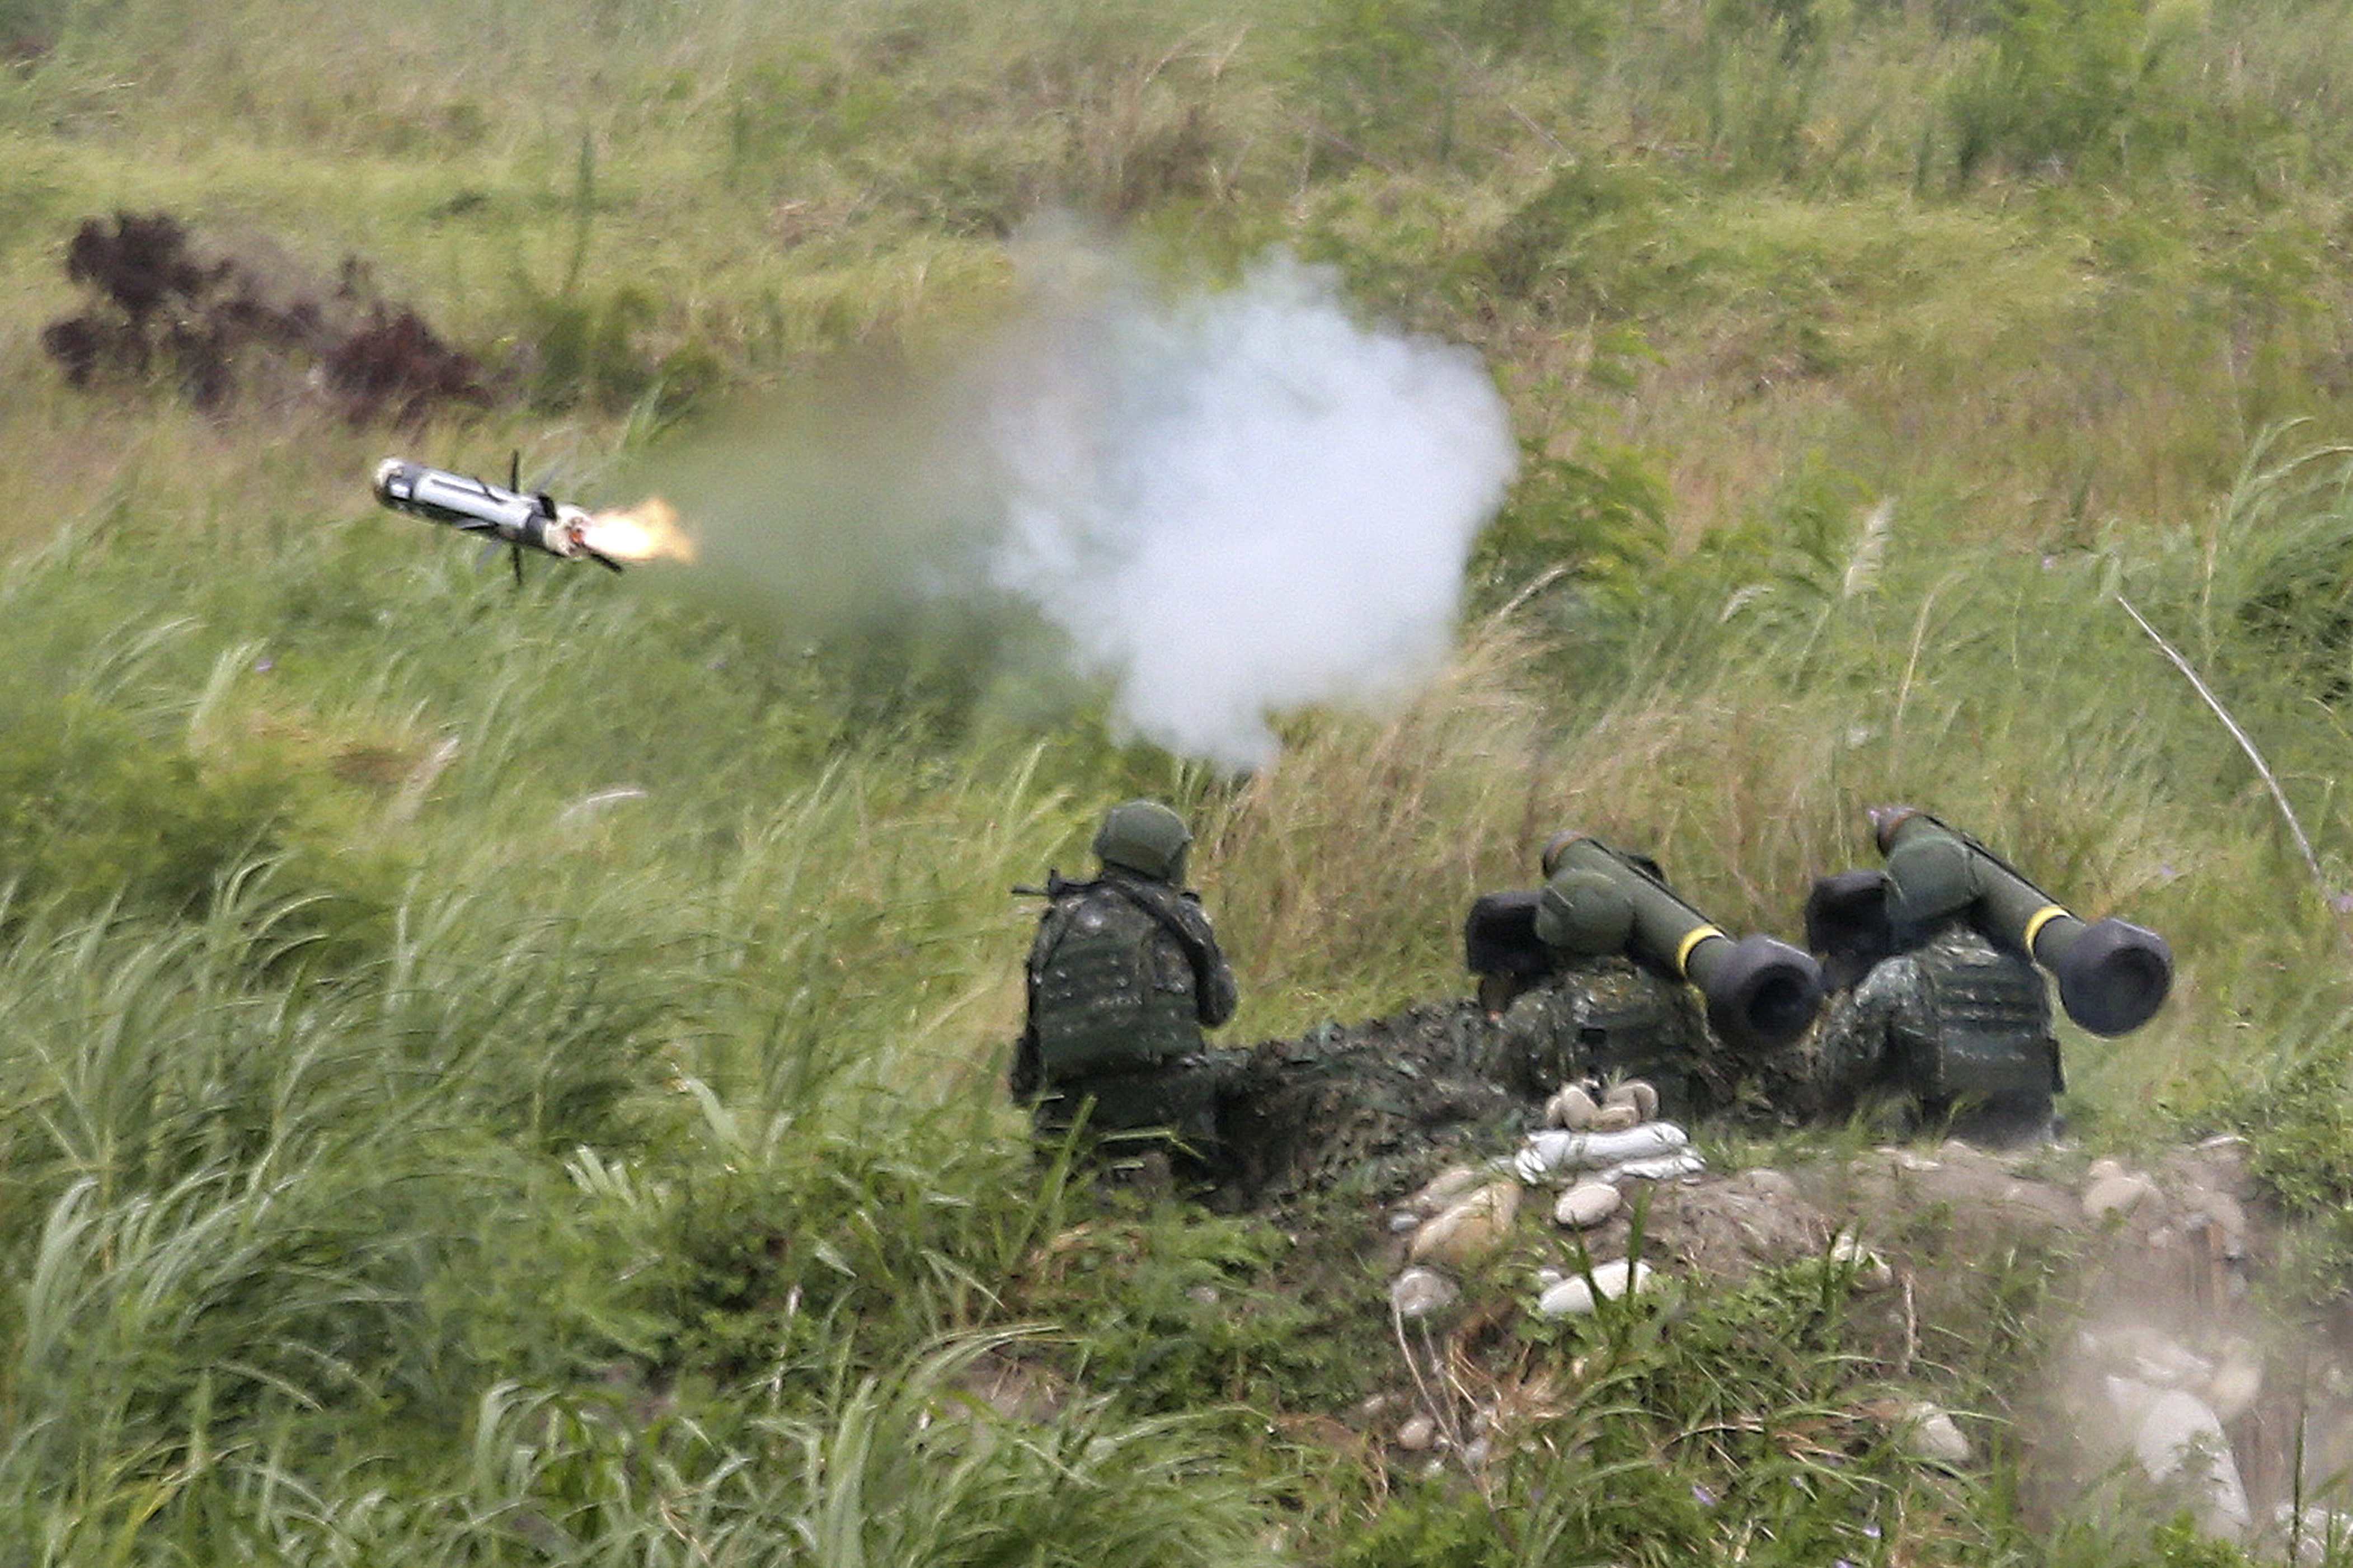 An FGM-148 Javelin anti-tank missile is fired during the 36th Han Kung military exercises in Taichung City, central Taiwan, Thursday, July 16, 2020. (AP Photo/Chiang Ying-ying)